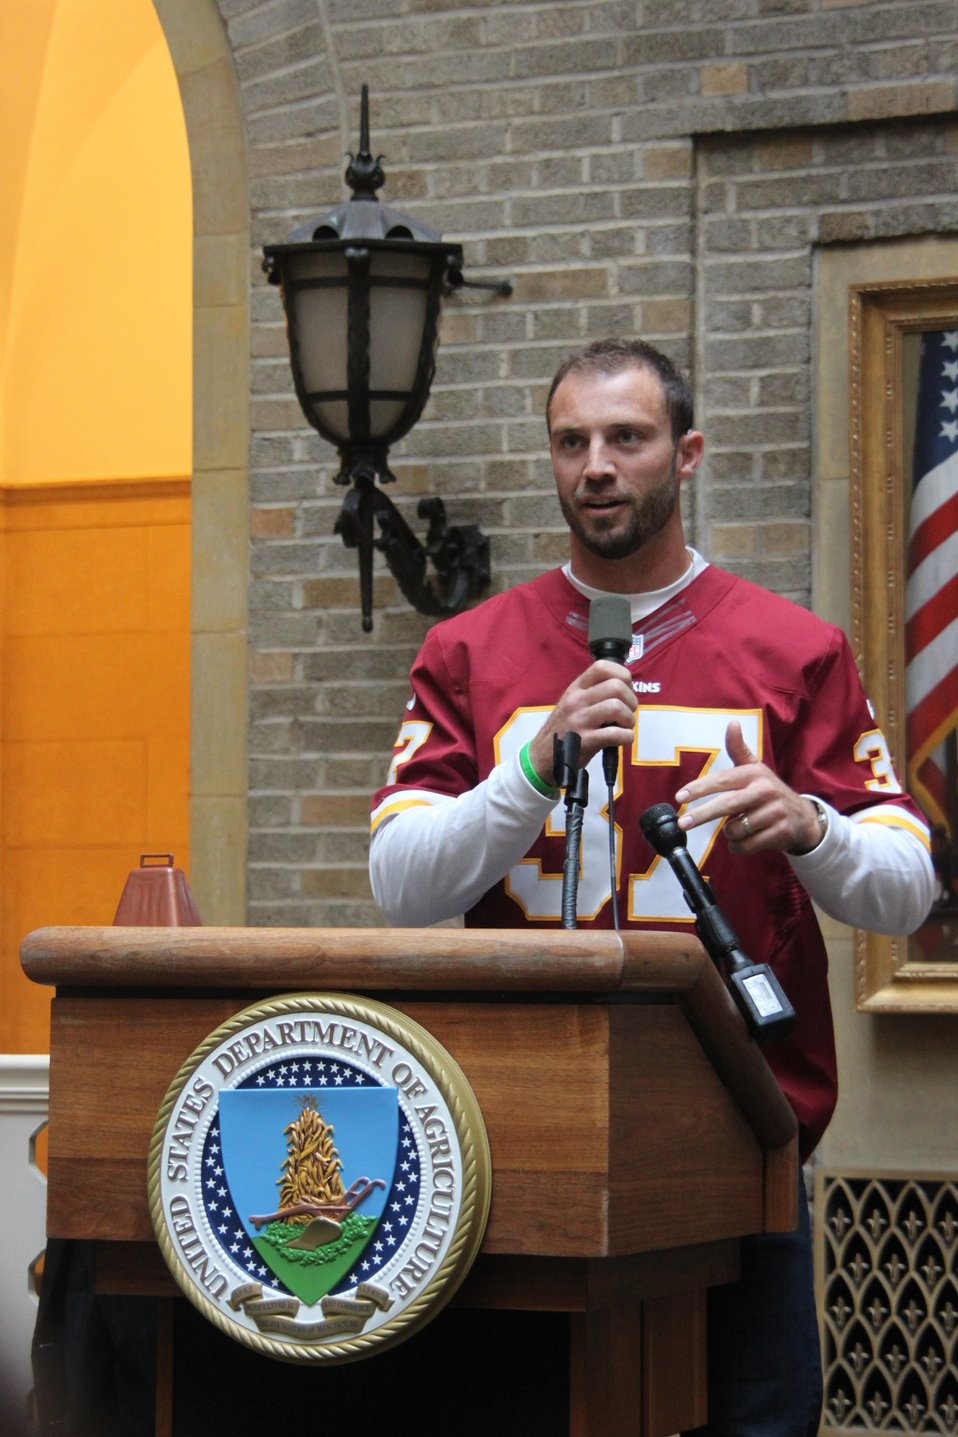 Washington Redskins Safety Reed Doughty